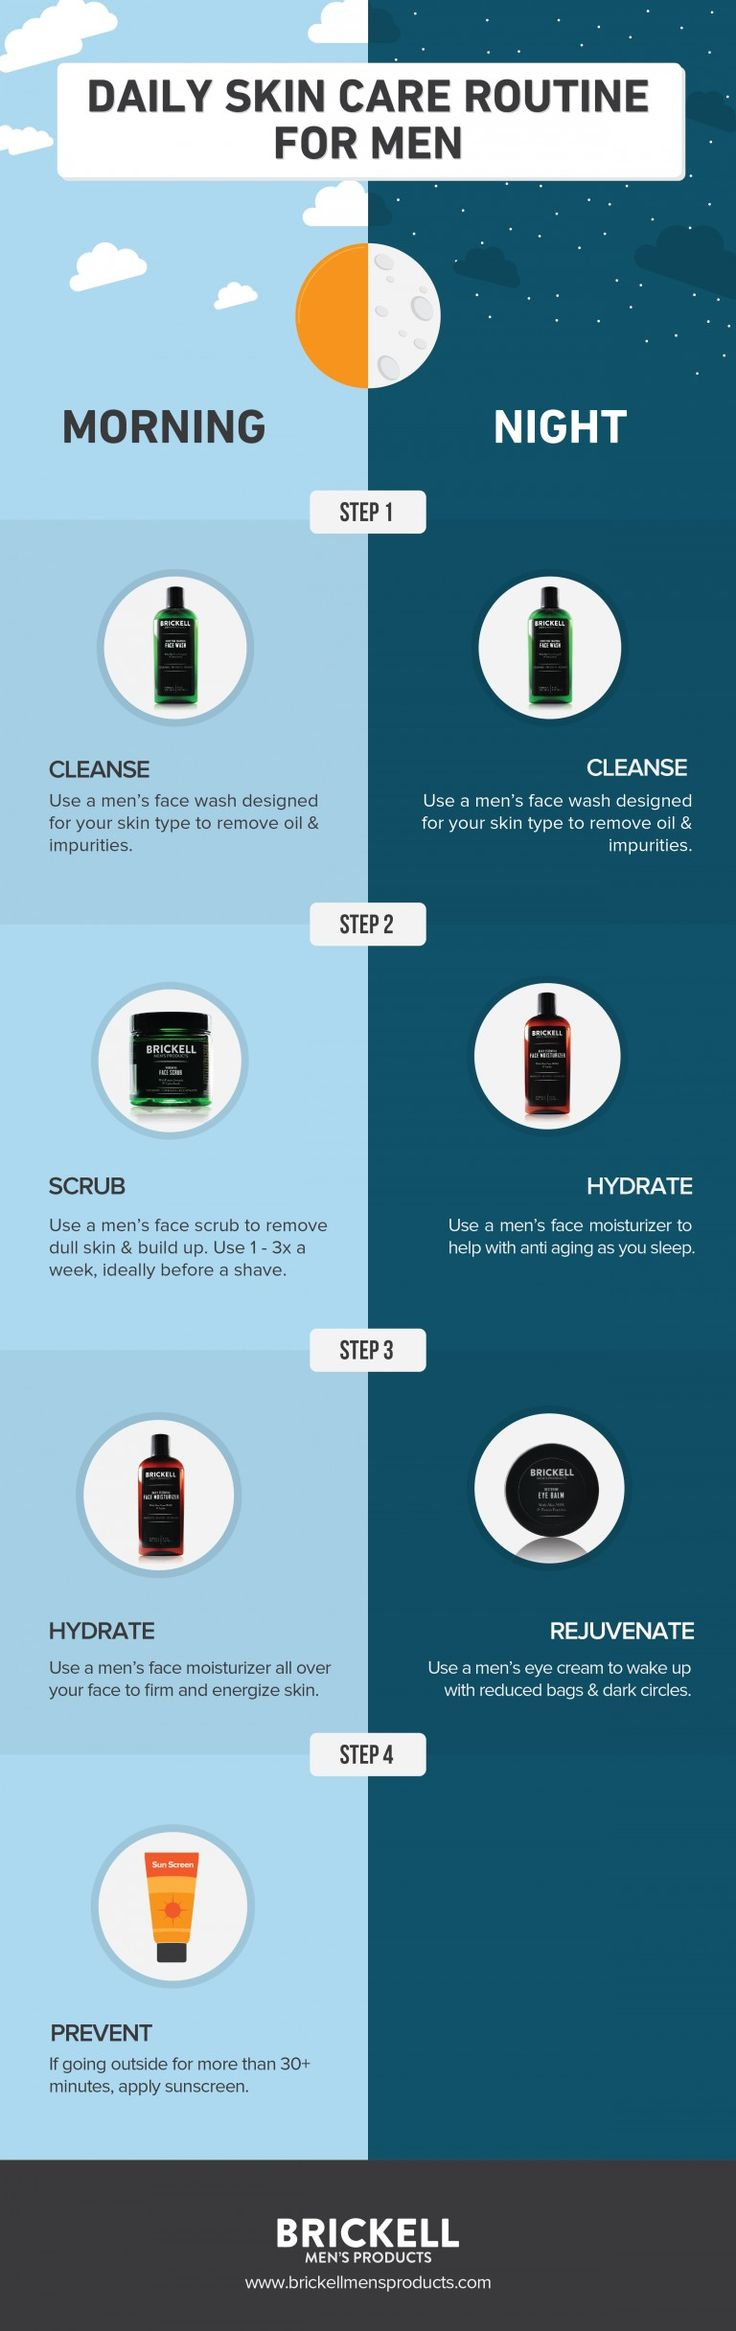 Men's Morning Skin Routine via Effortless Gent and Brickell Men's Products